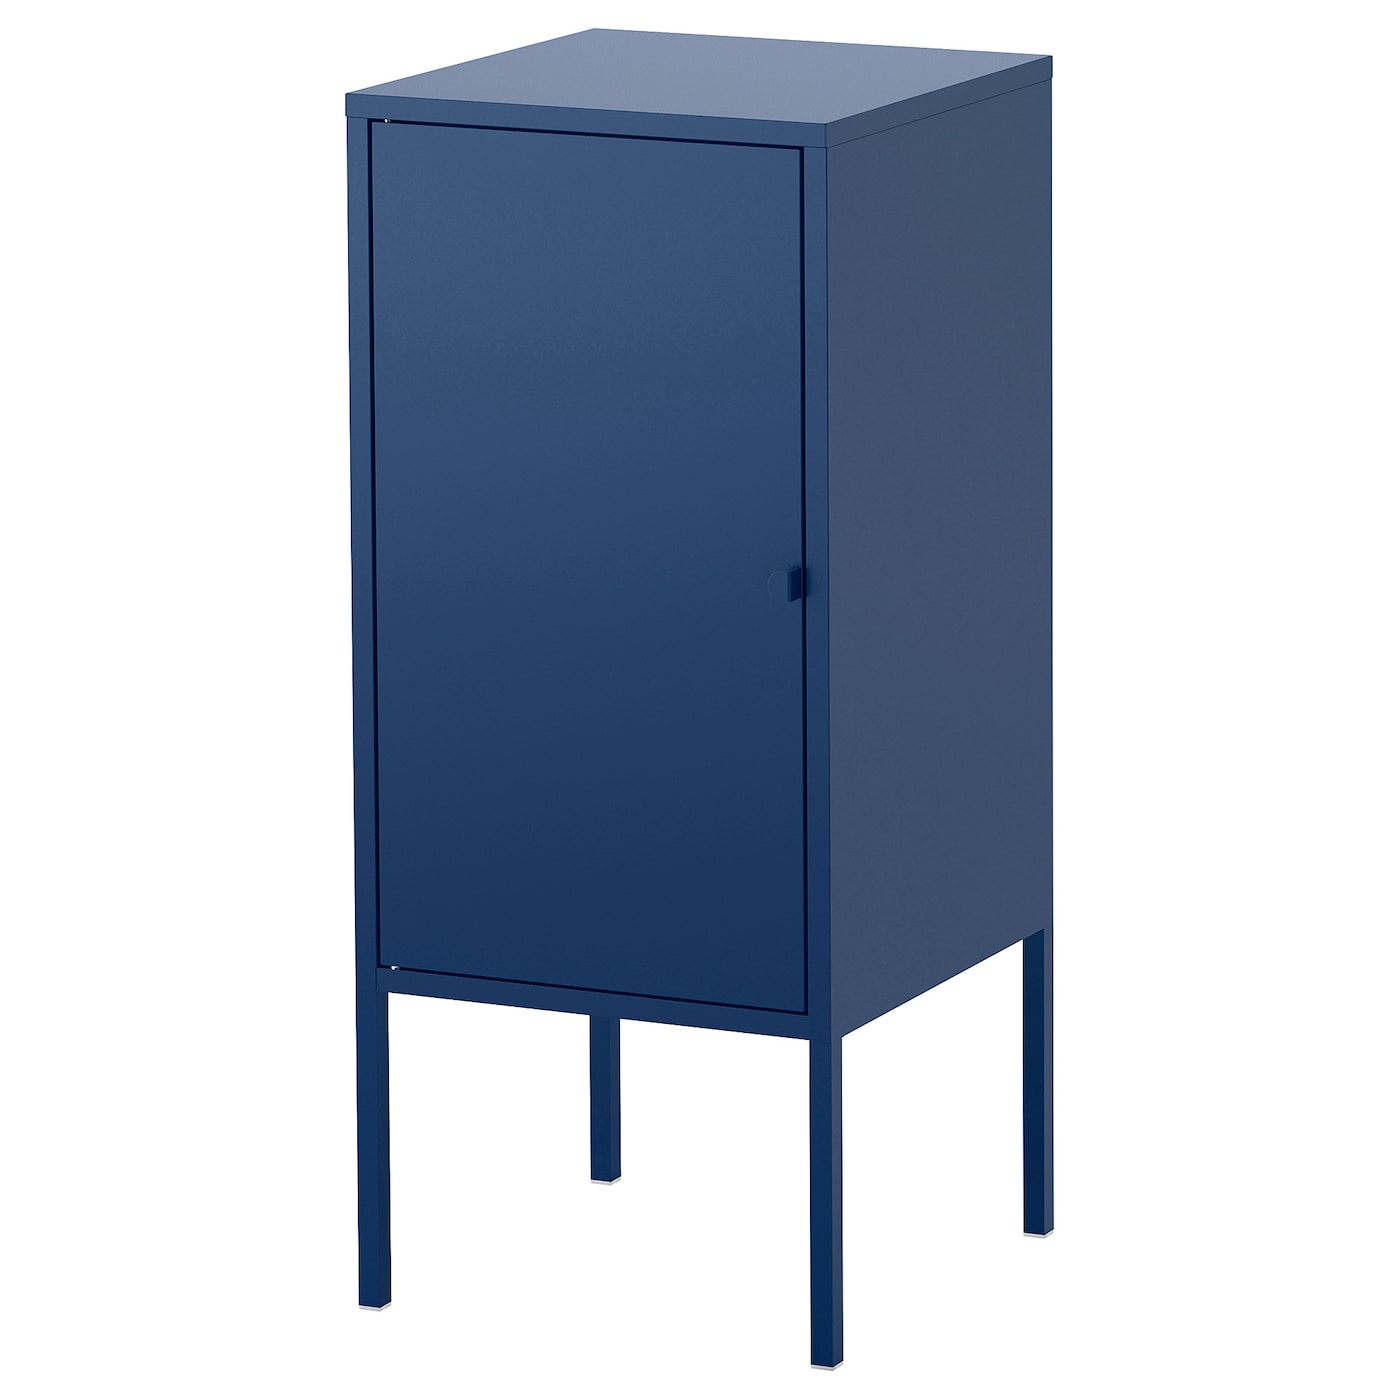 Lixhult cabinet metal dark blue 35x60 cm ikea for Metal lockers ikea